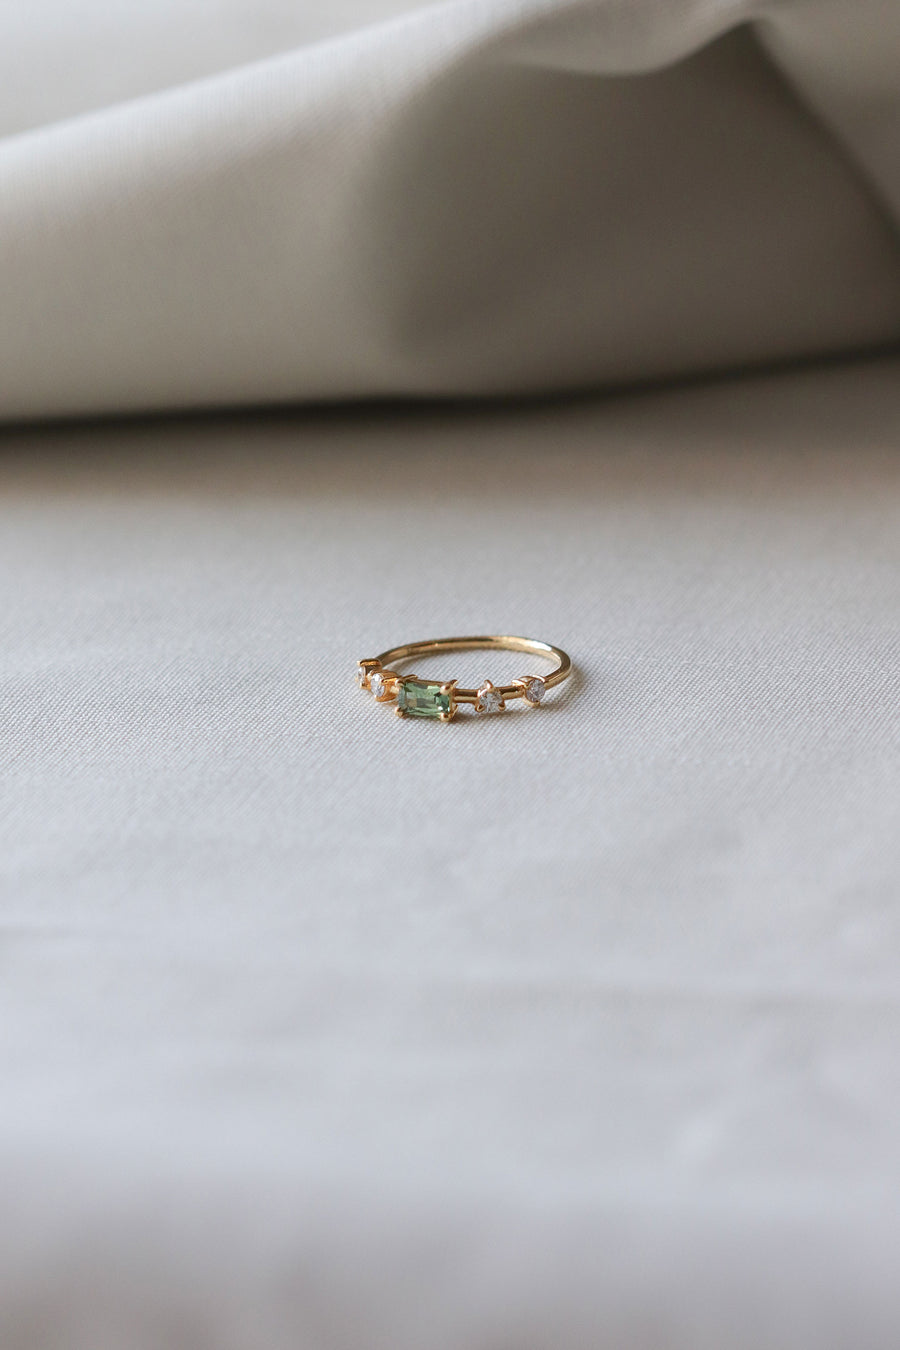 The Horizon Ring - Green Parti Sapphire and Diamonds in 18k Gold